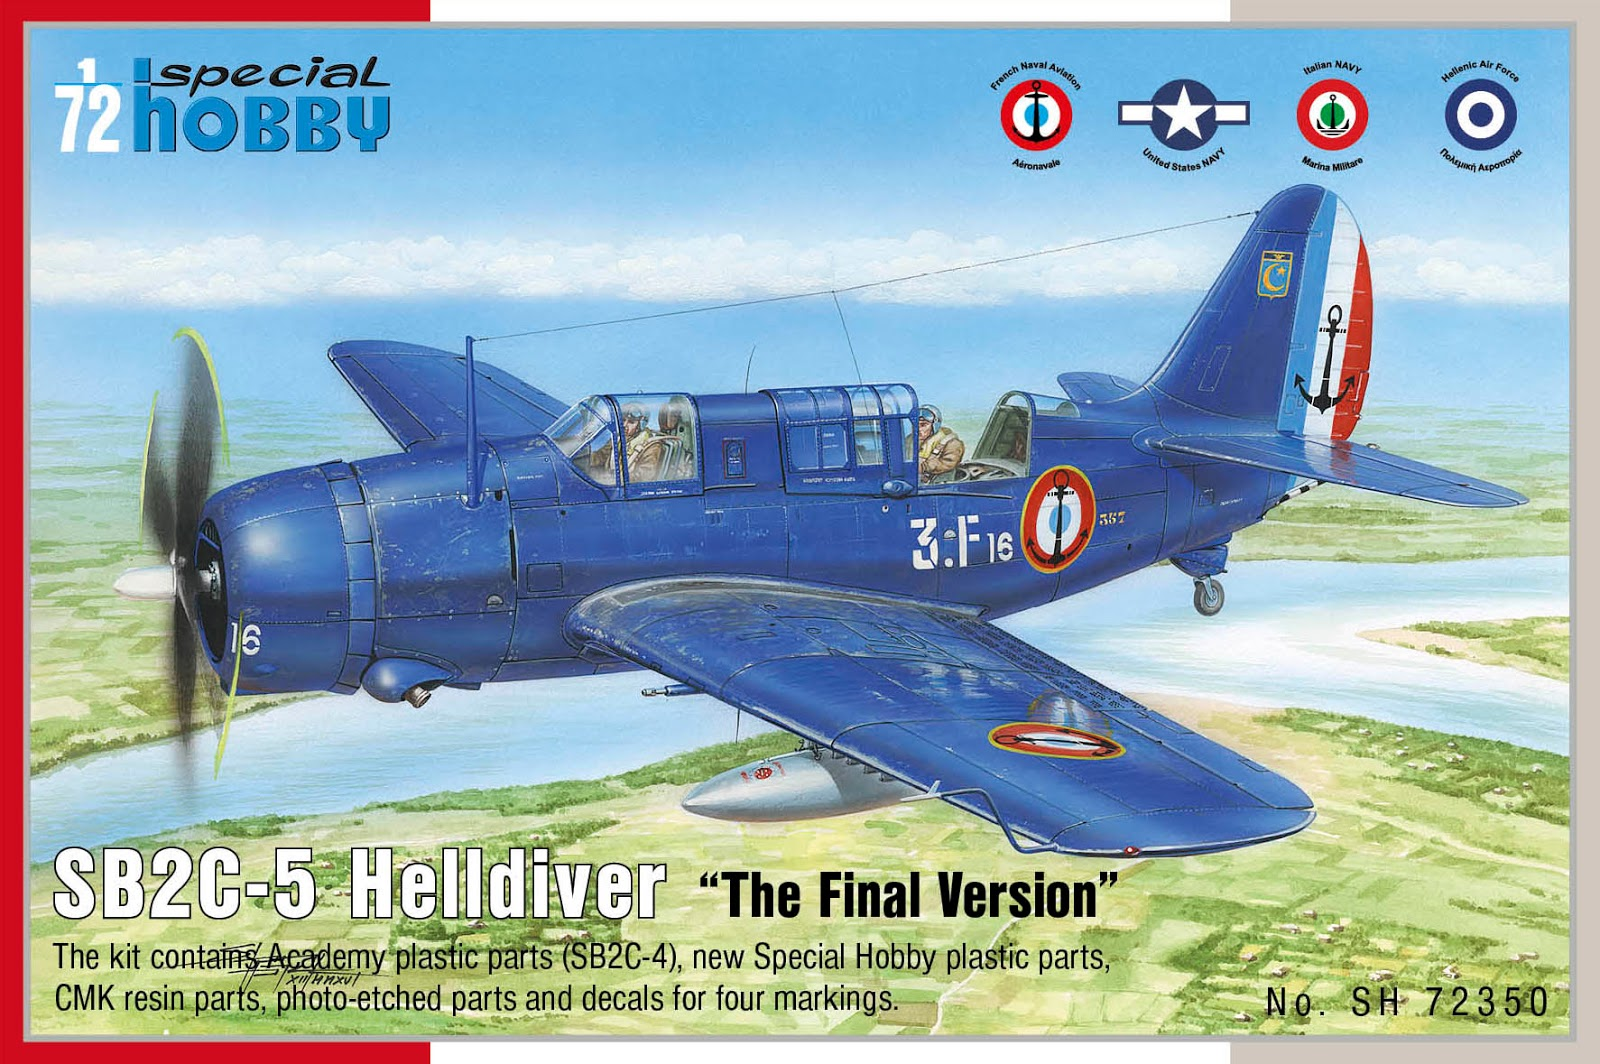 1/72 - Curtiss SB2C-5 Helldiver by Special Hobby (plastic